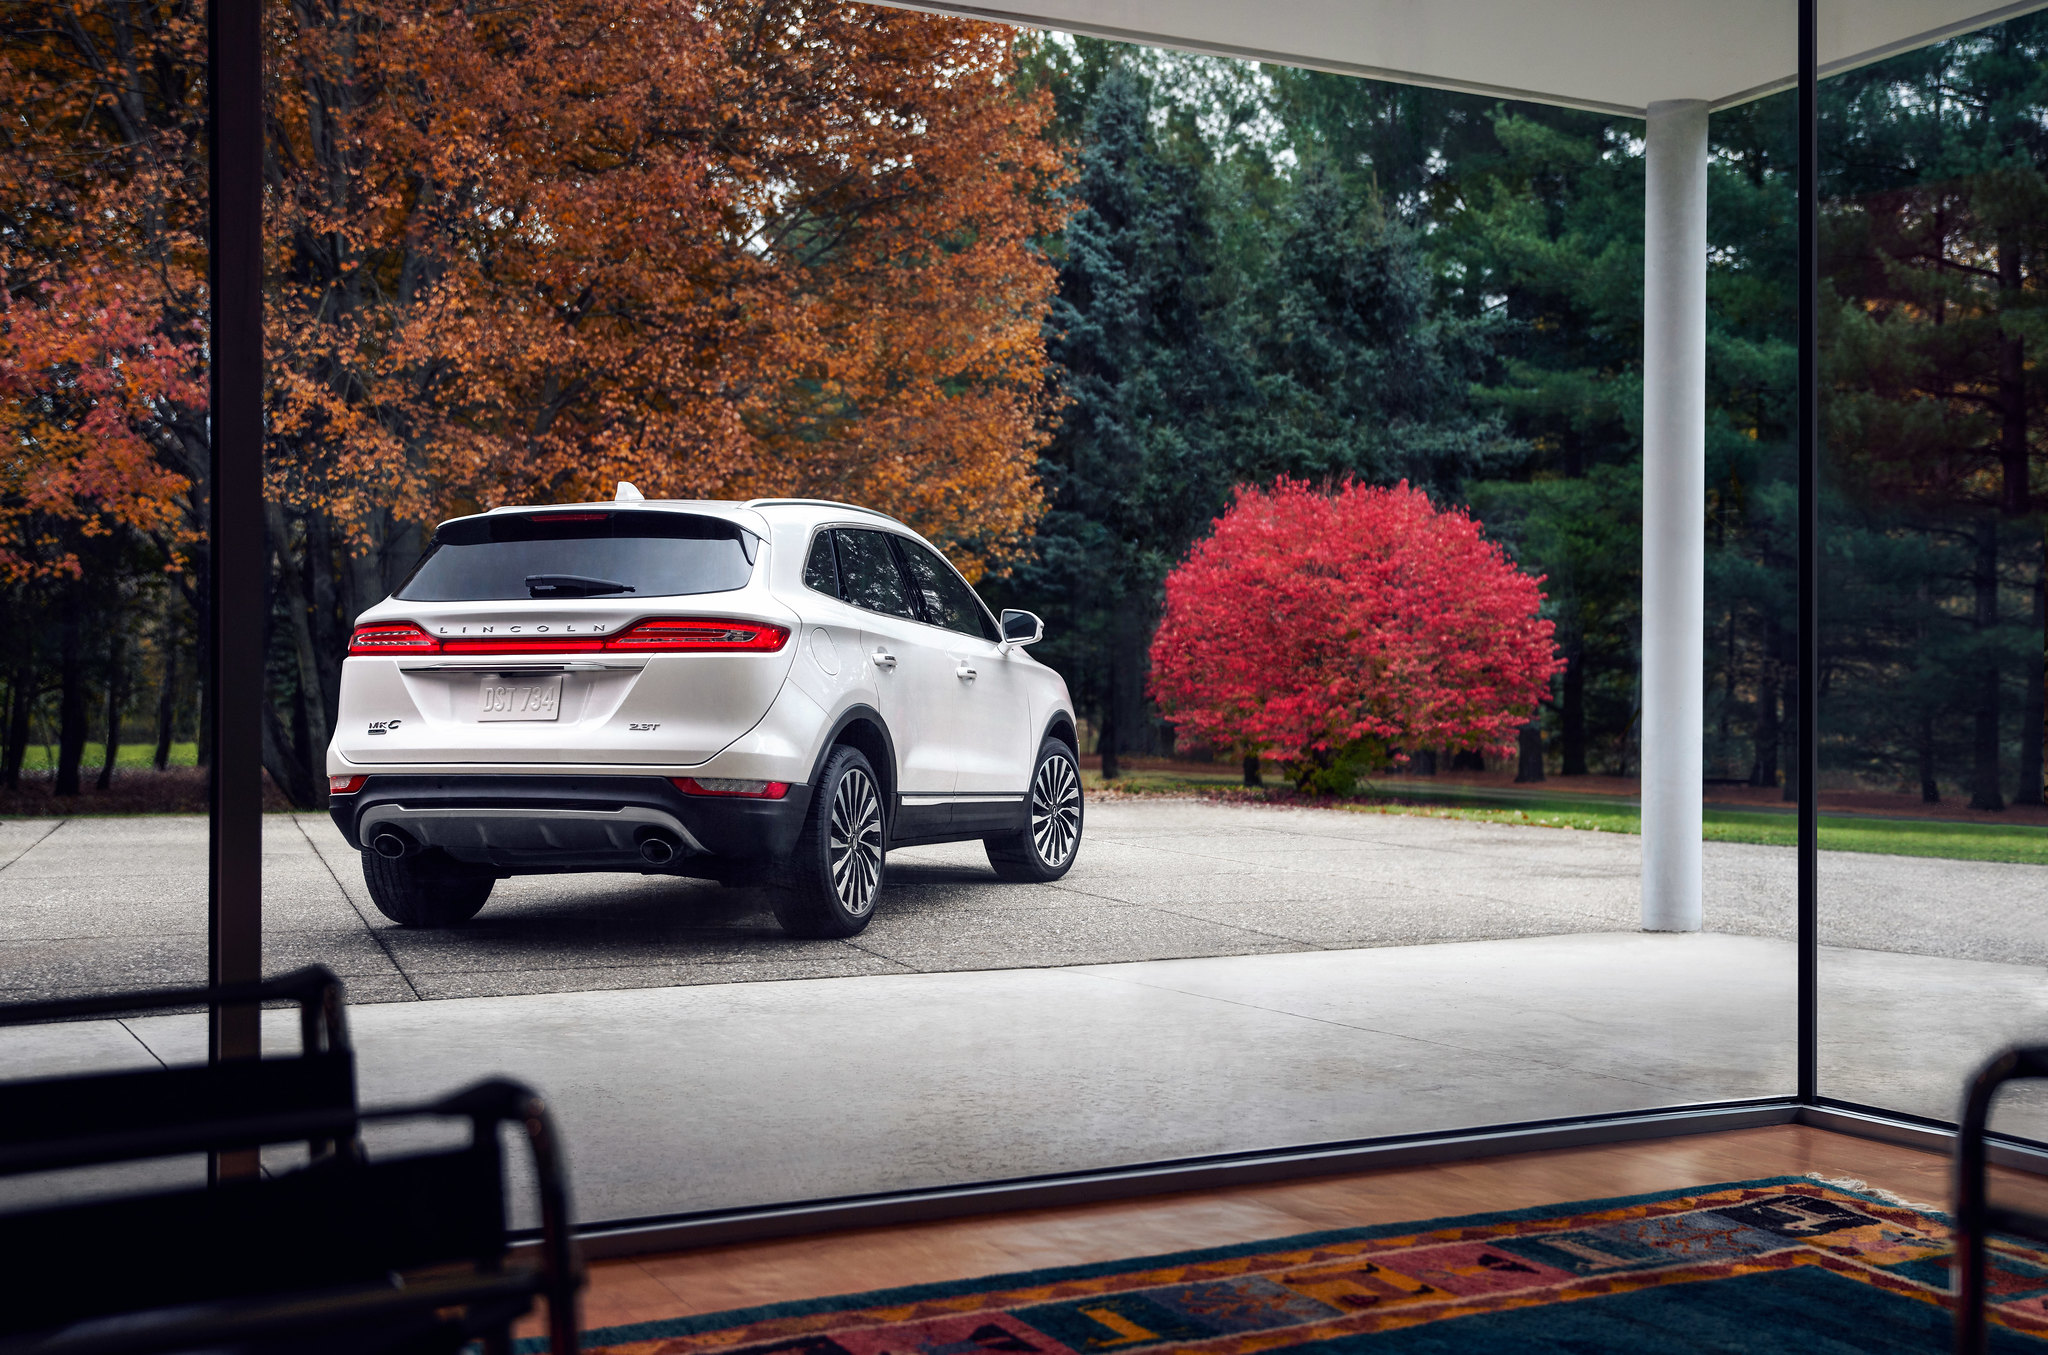 2019 Lincoln MKC Capabilities - Toronto, ON